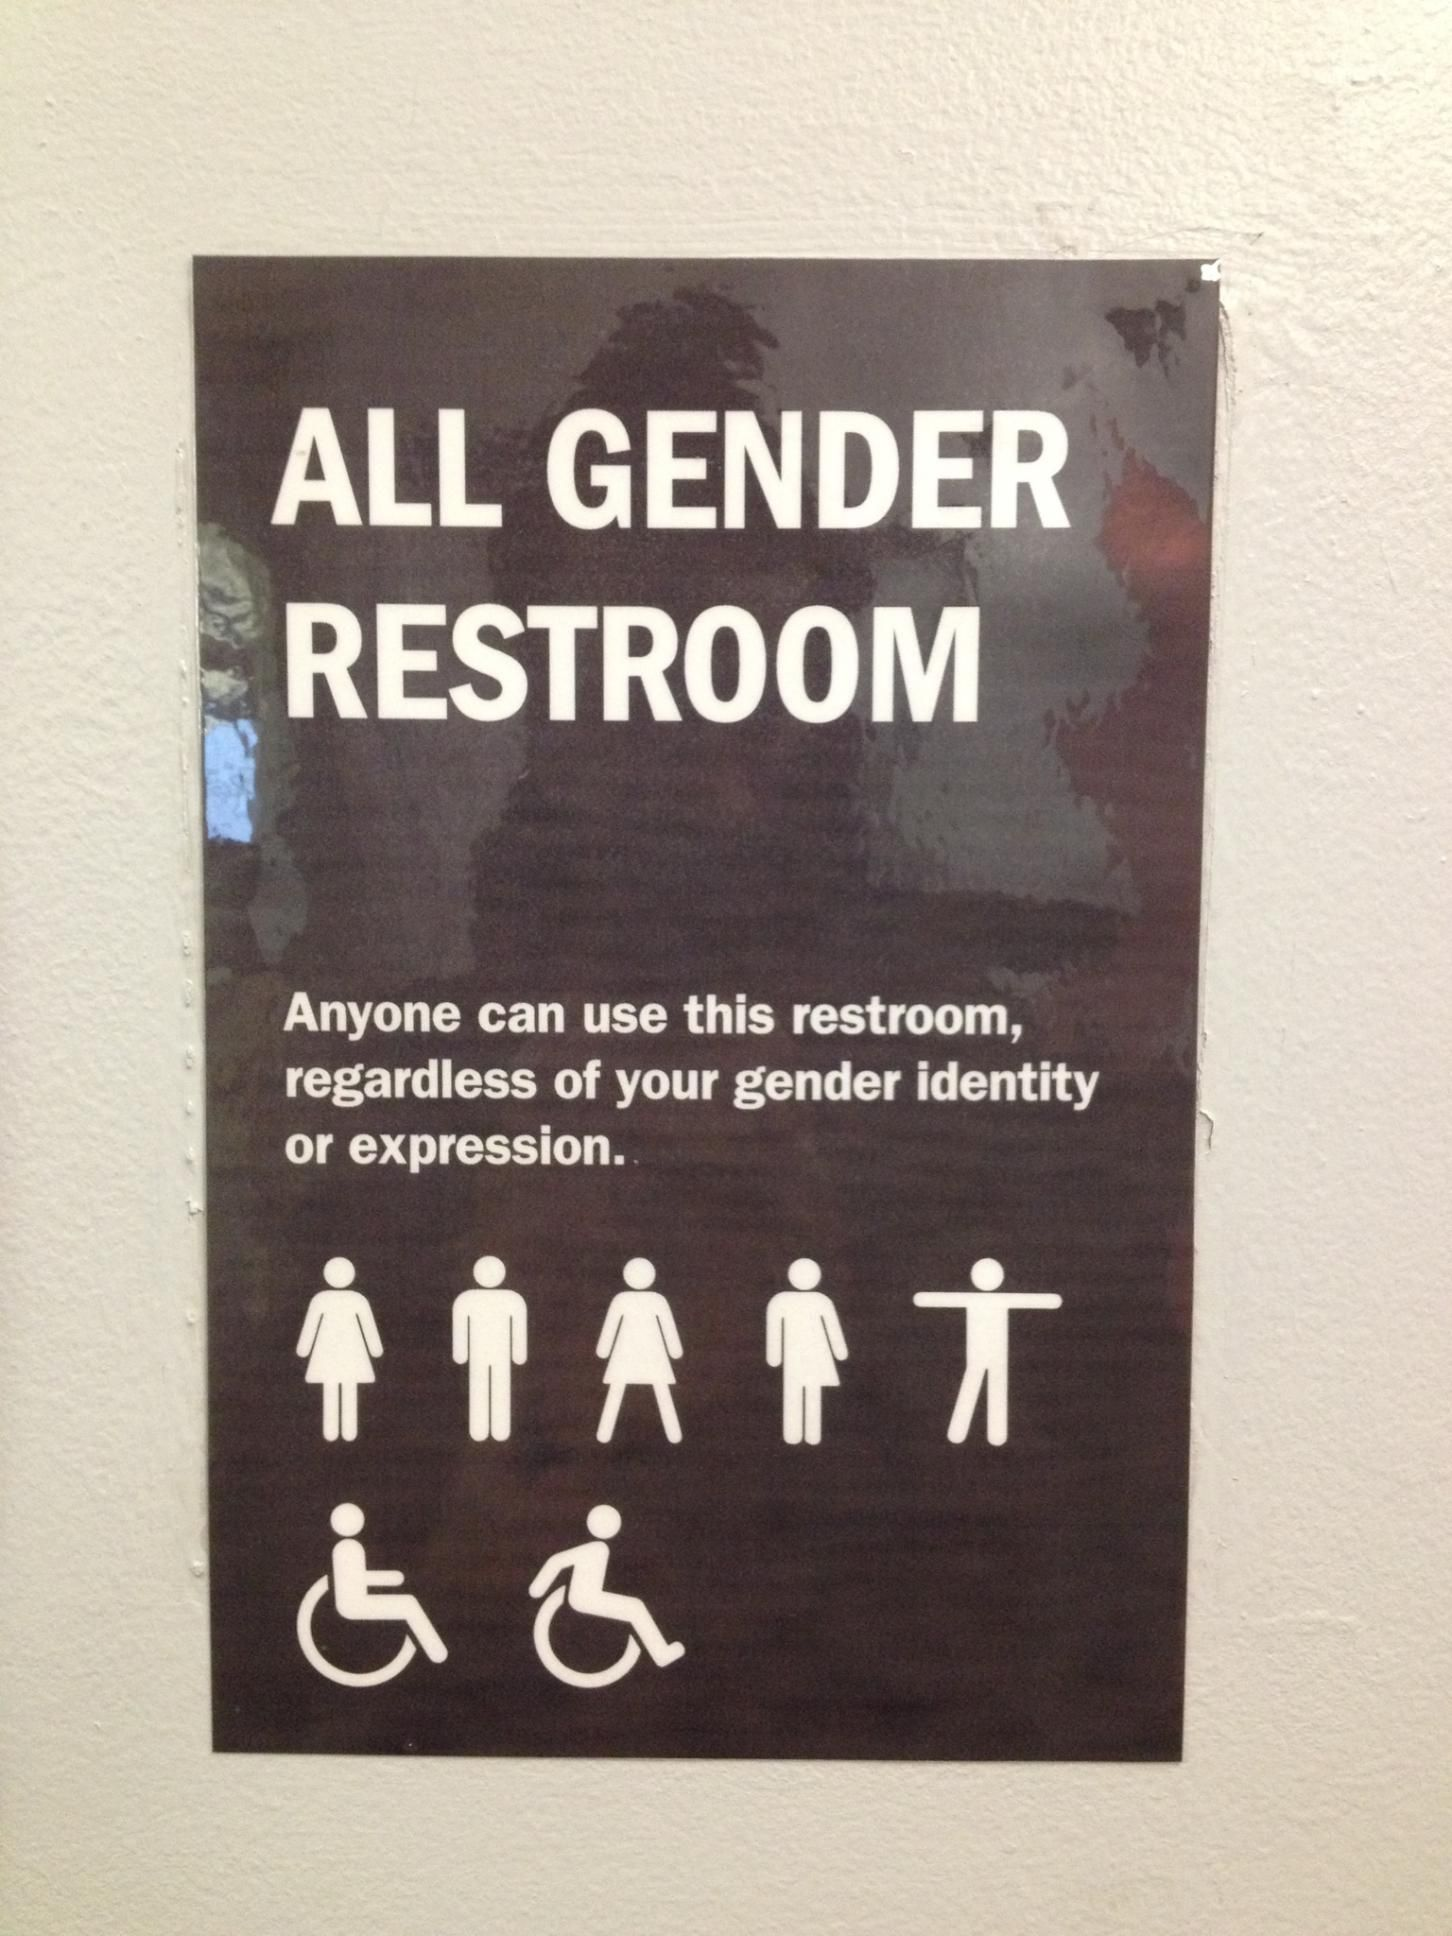 Many Of These Bathroom Signs Are Beginning To Pop Up Across America It S Helping To Break Down The Binary All Gender Restroom Gender Neutral Bathrooms Gender